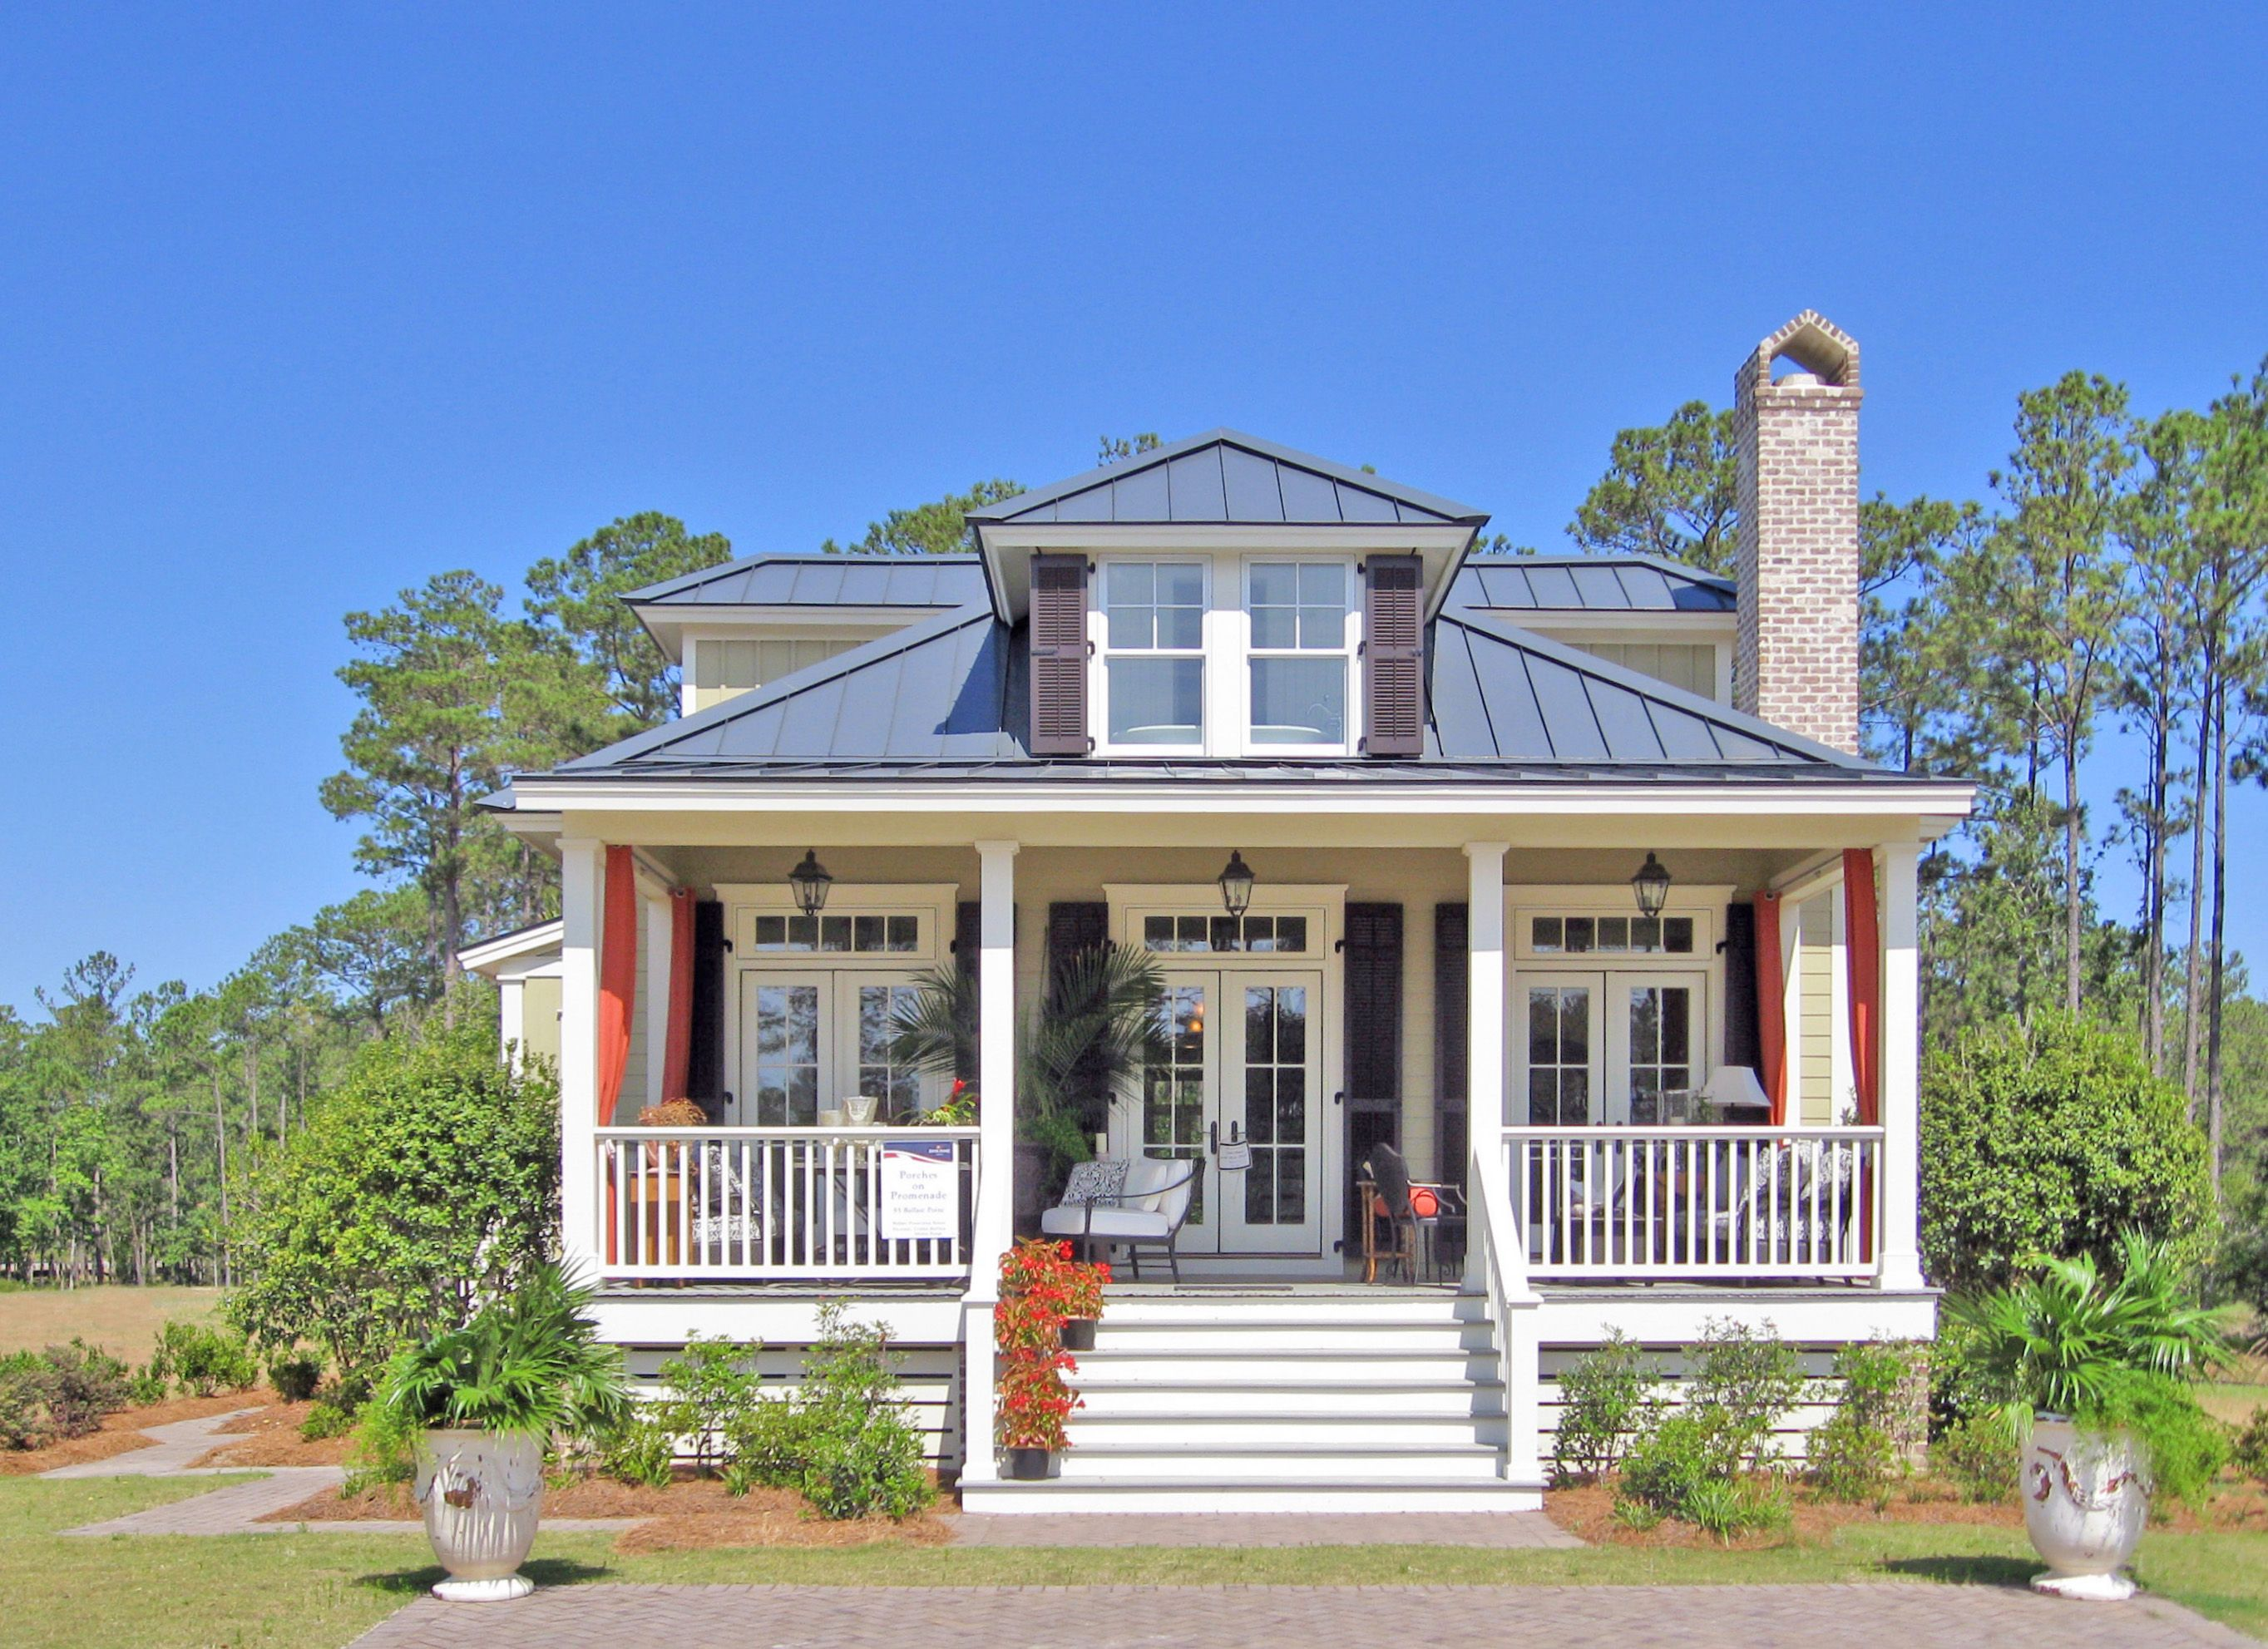 Front Elevation of a home on Ballast Point